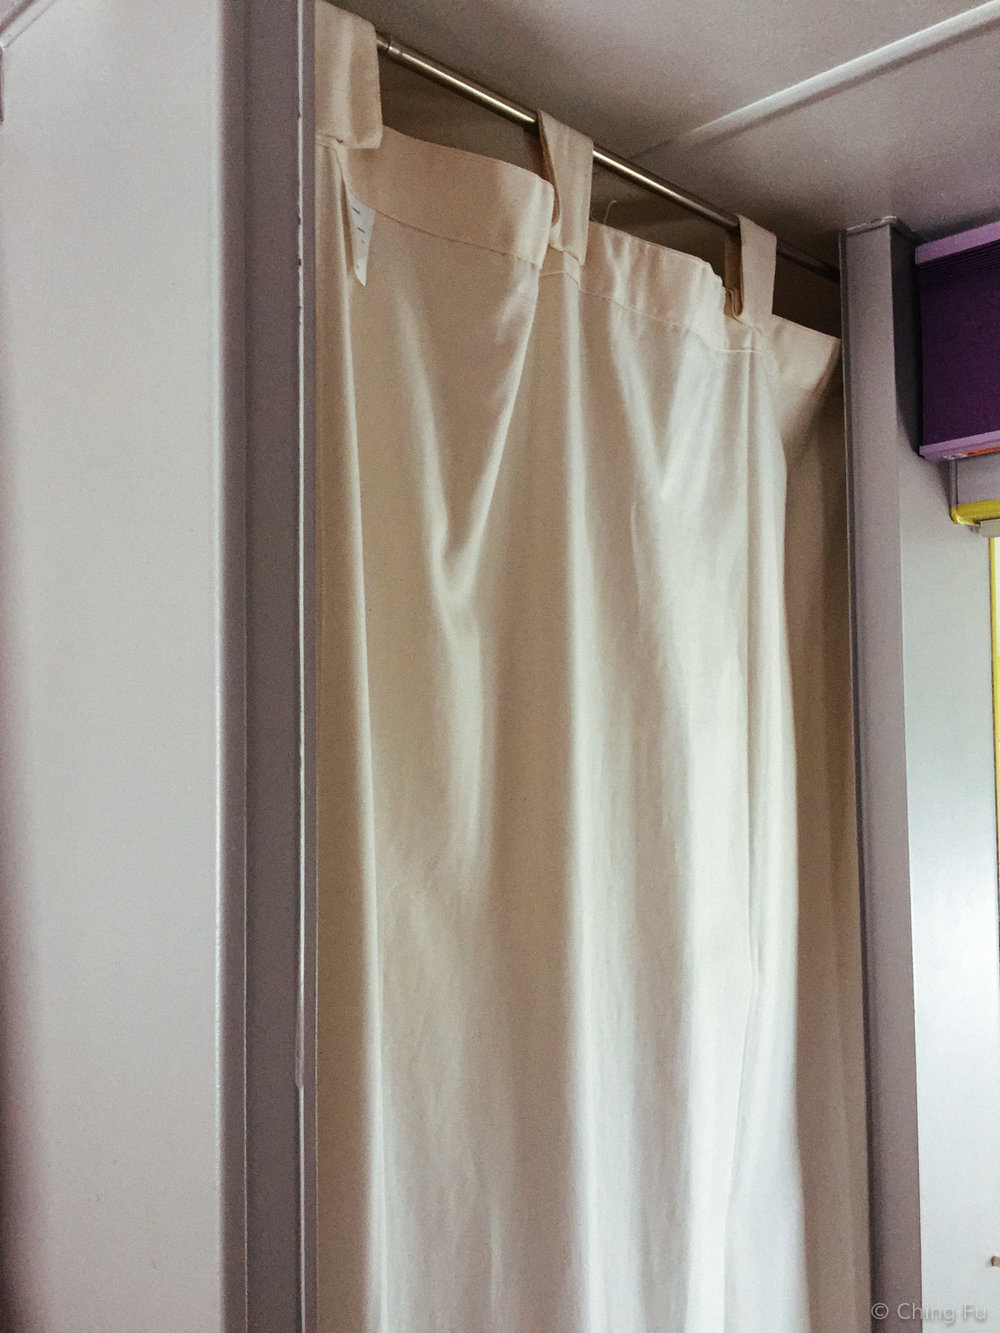 Curtain instead of a real door for our bathroom.